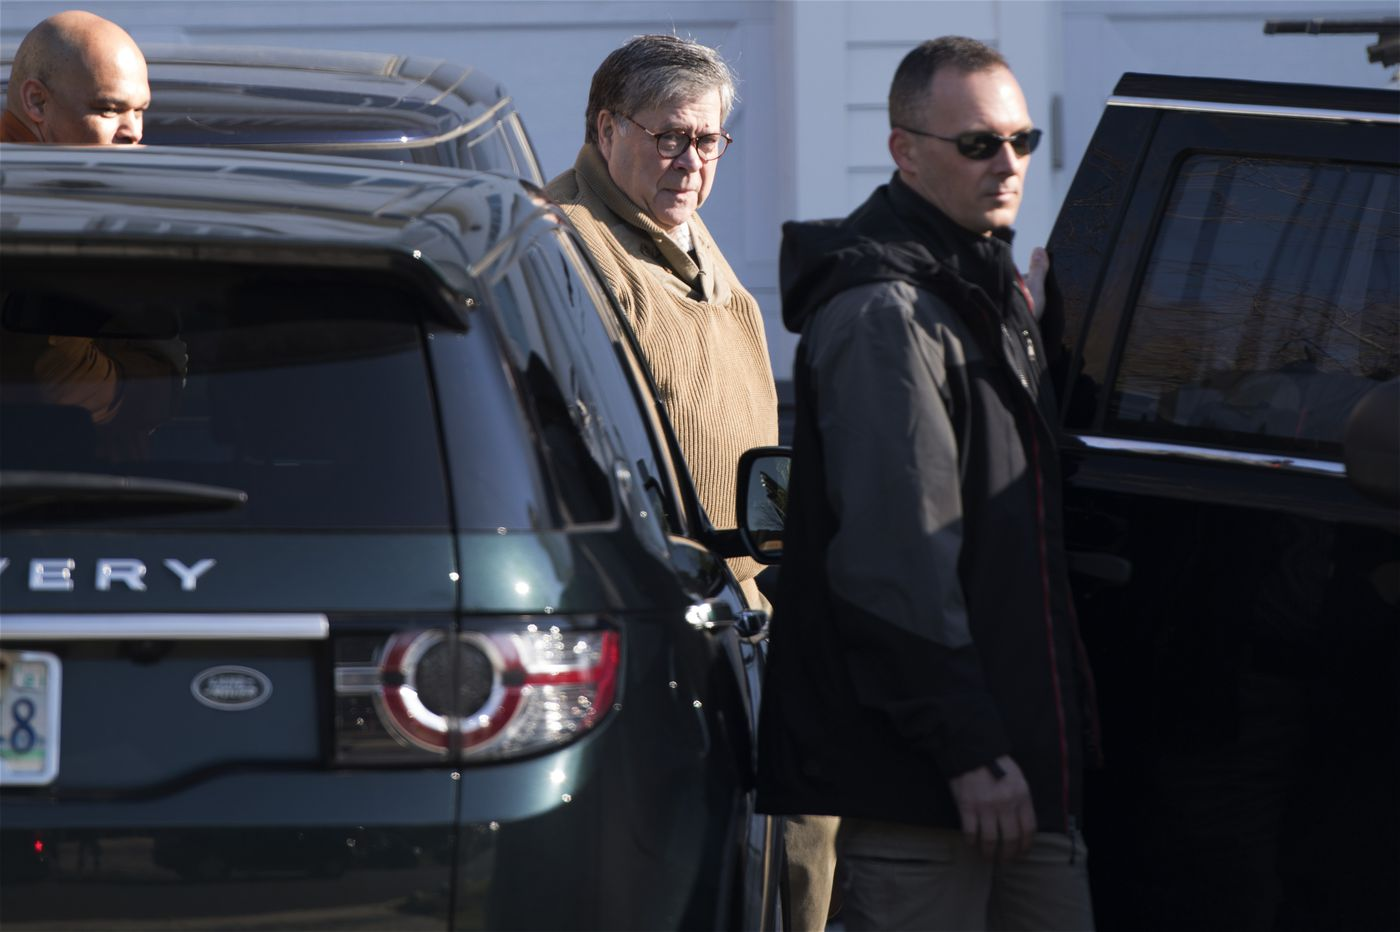 Attorney general preparing a set of conclusions from Mueller report but isn't expected to finish that work Saturday